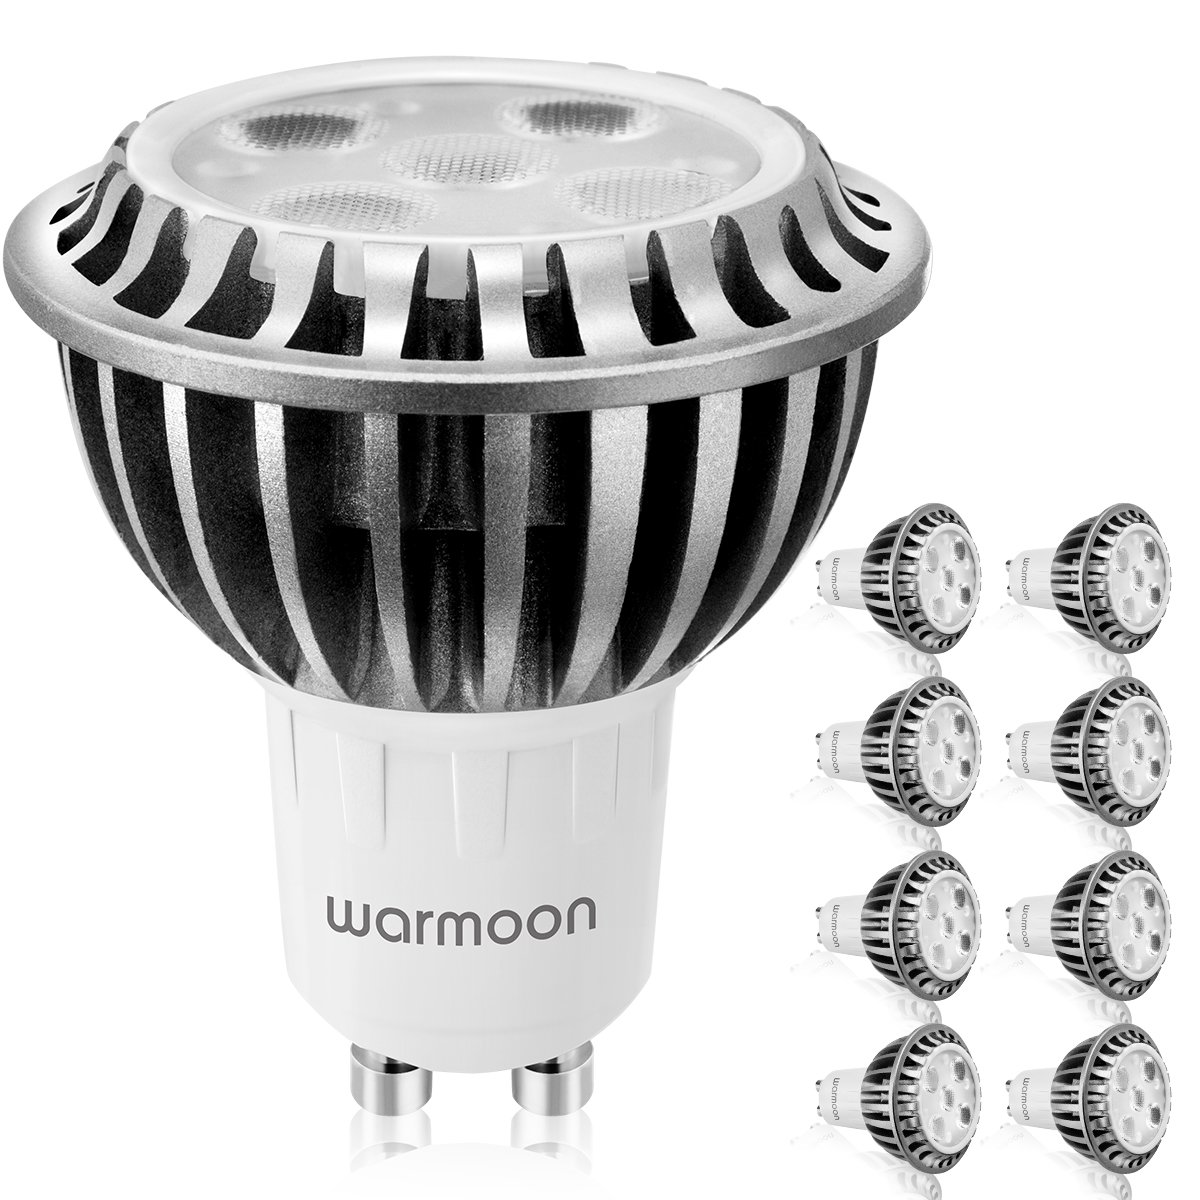 Warmoon GU10 LED Bulbs, 5W (50W equivalent),6500K(Daylight White), 60 Beam Angle, Standard Size LED Light Bulbs(Pack of 8)